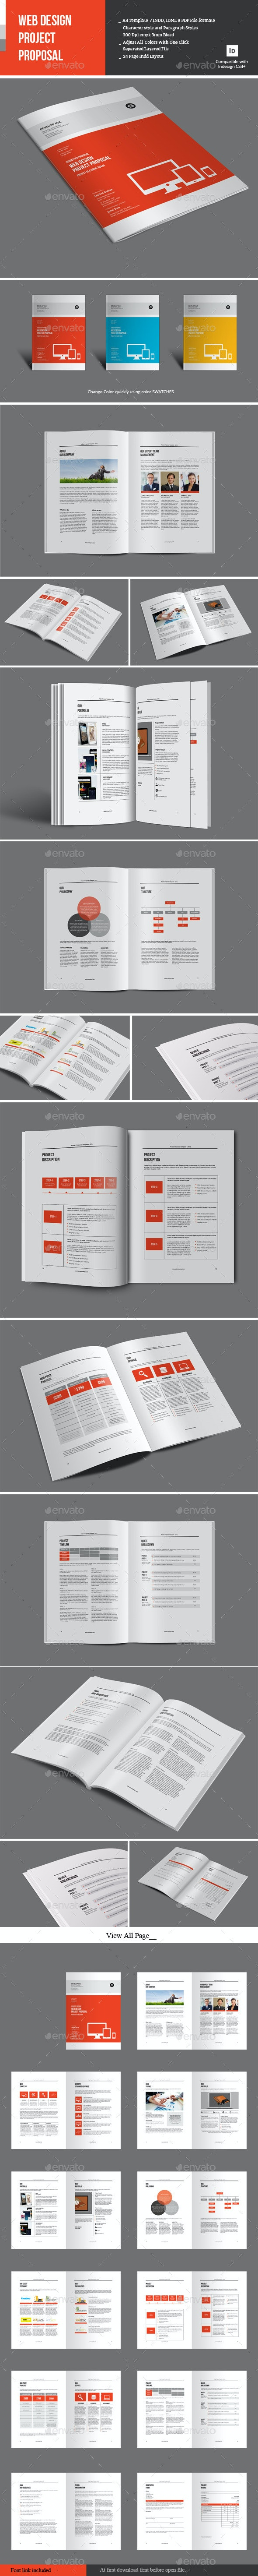 Web Design Project Proposal - Proposals & Invoices Stationery